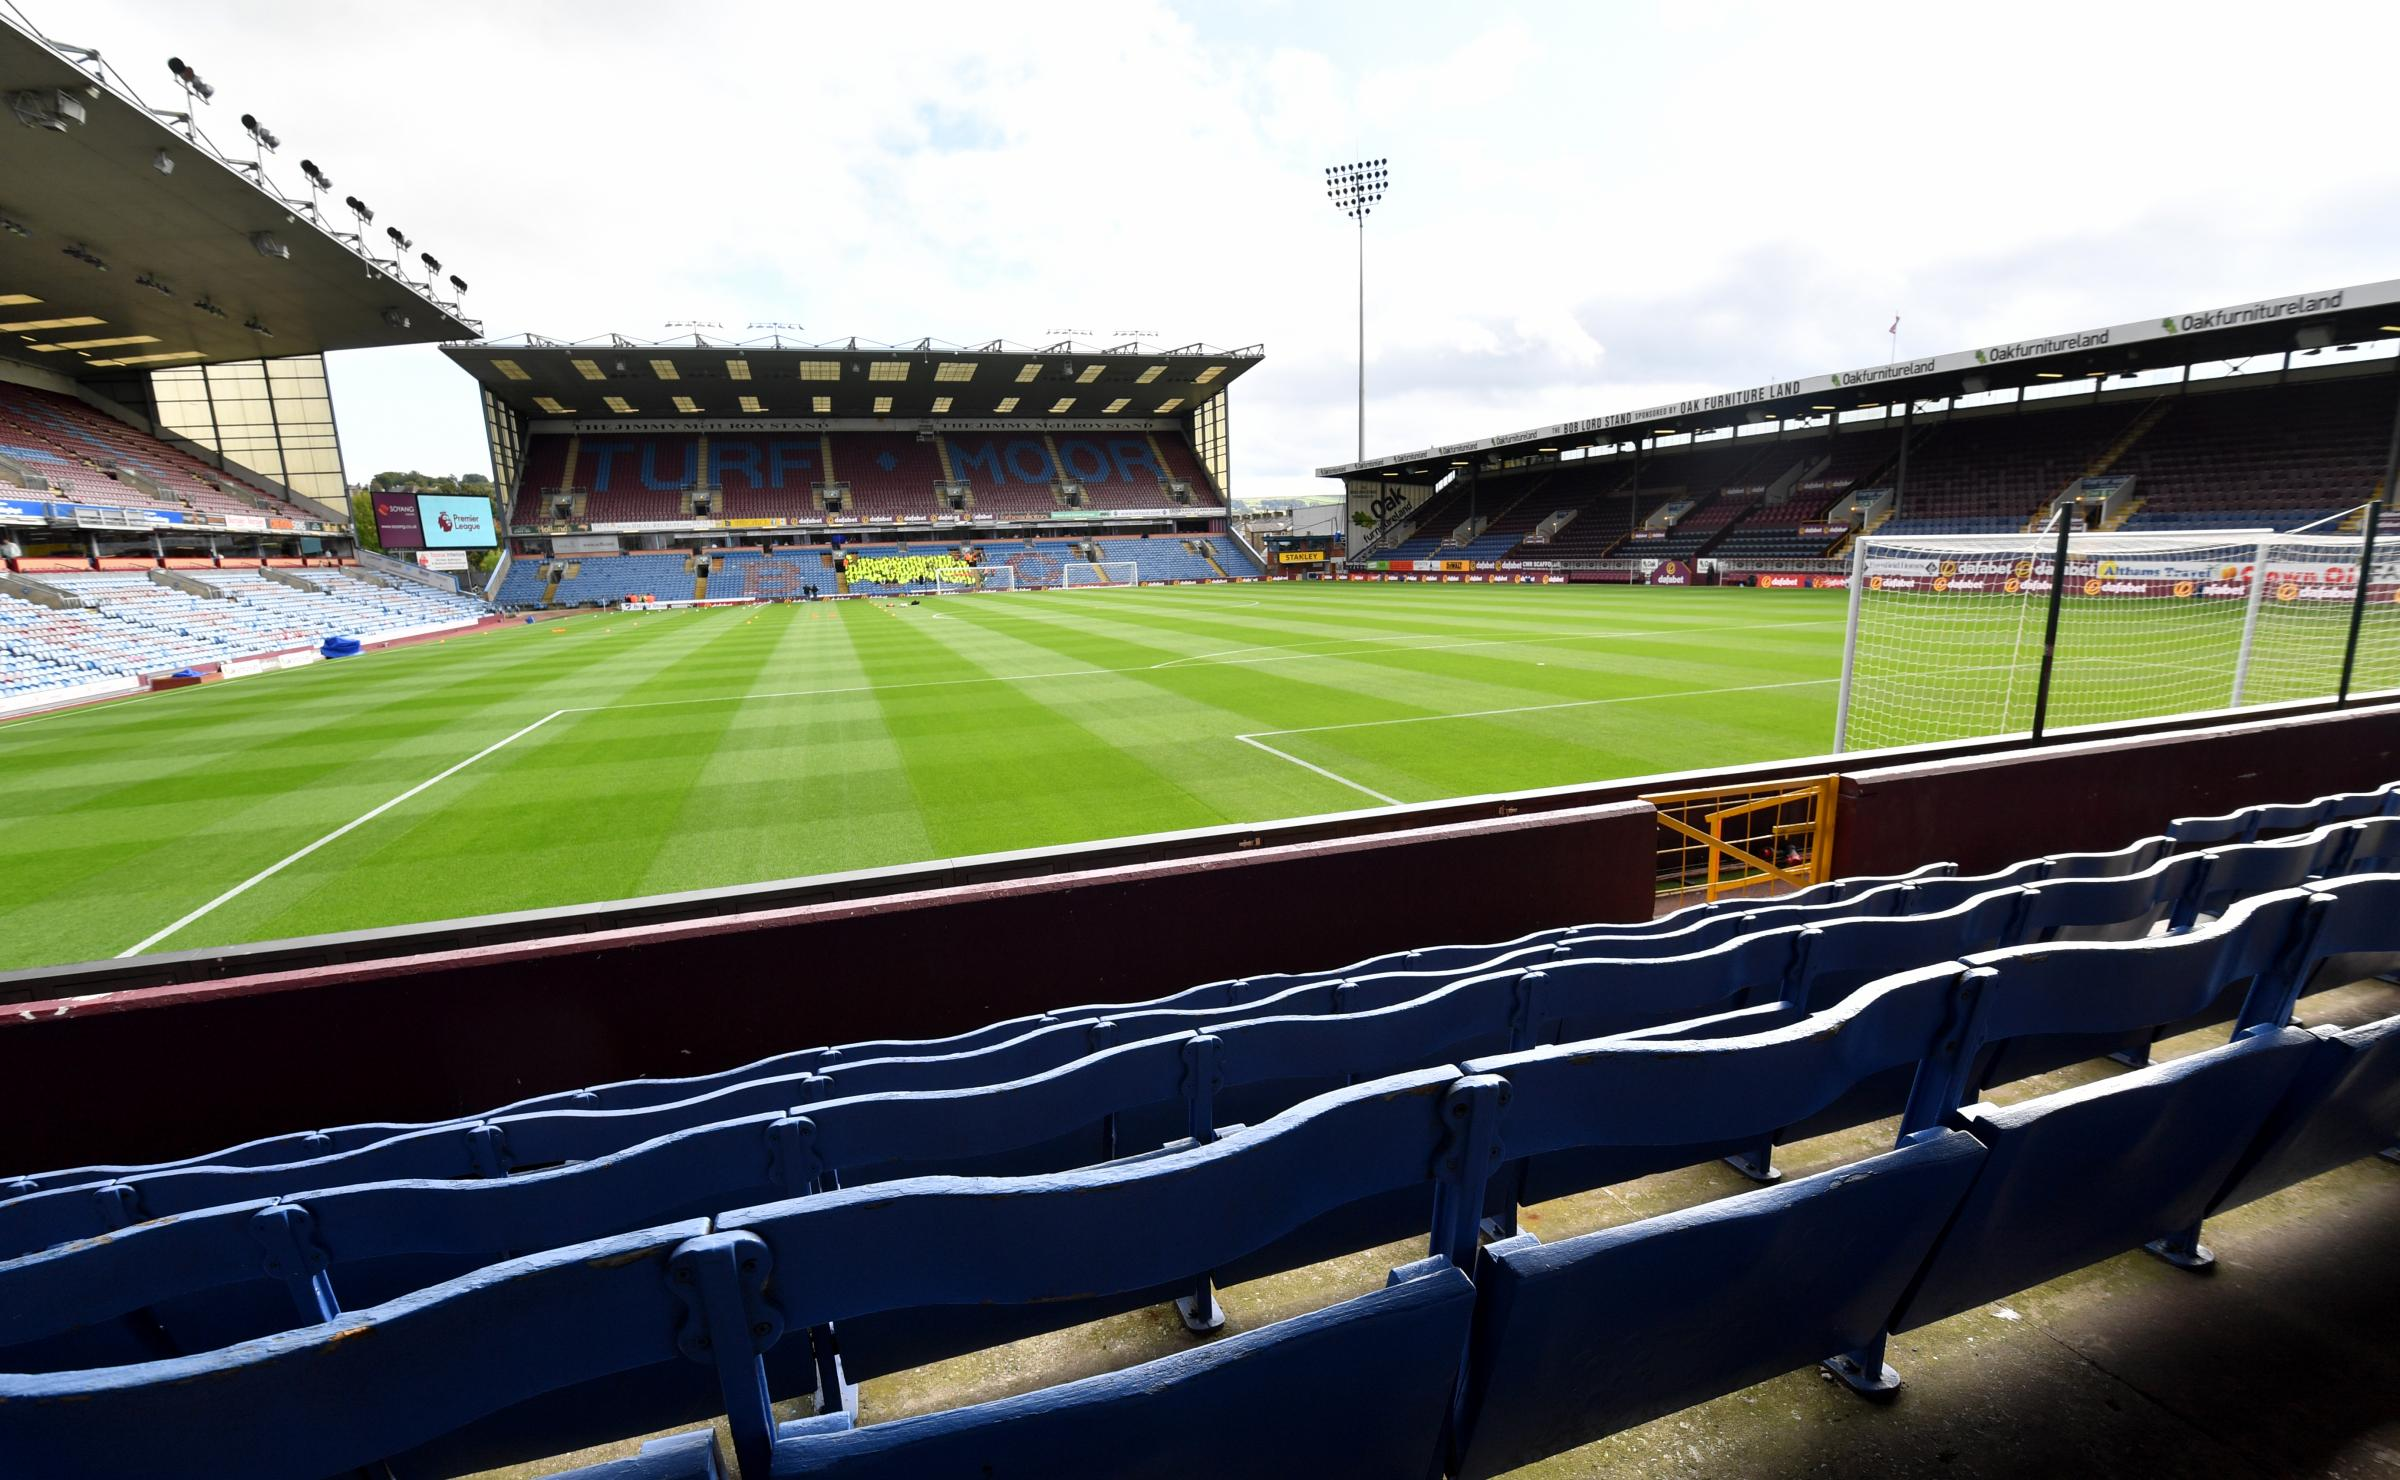 Burnley fans' chance to own piece of Turf Moor history